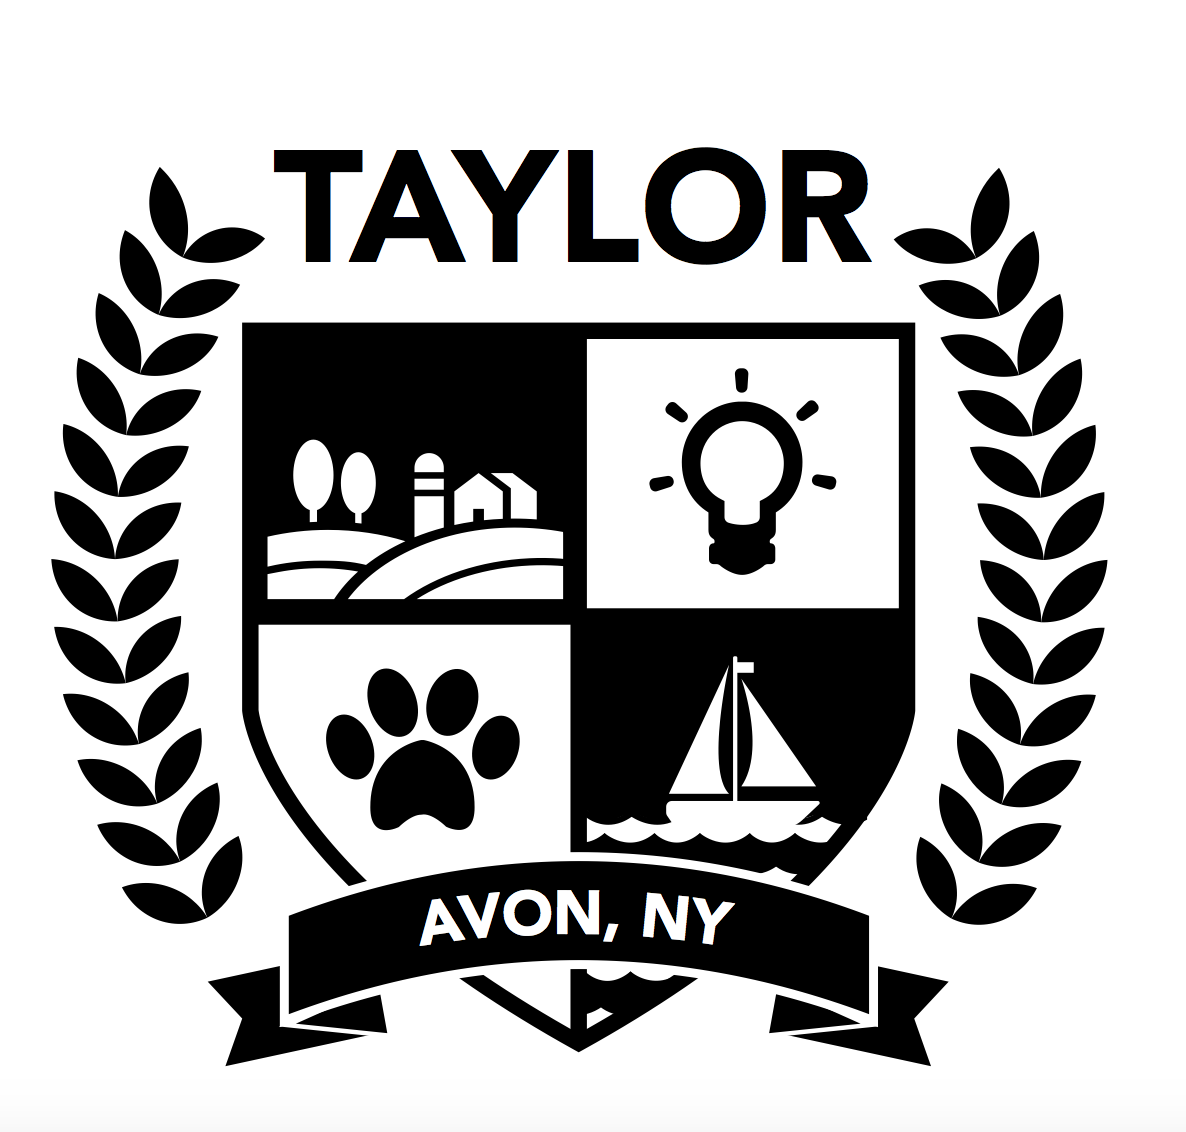 Taylor family crest skillshare projects 87146262 buycottarizona Image collections